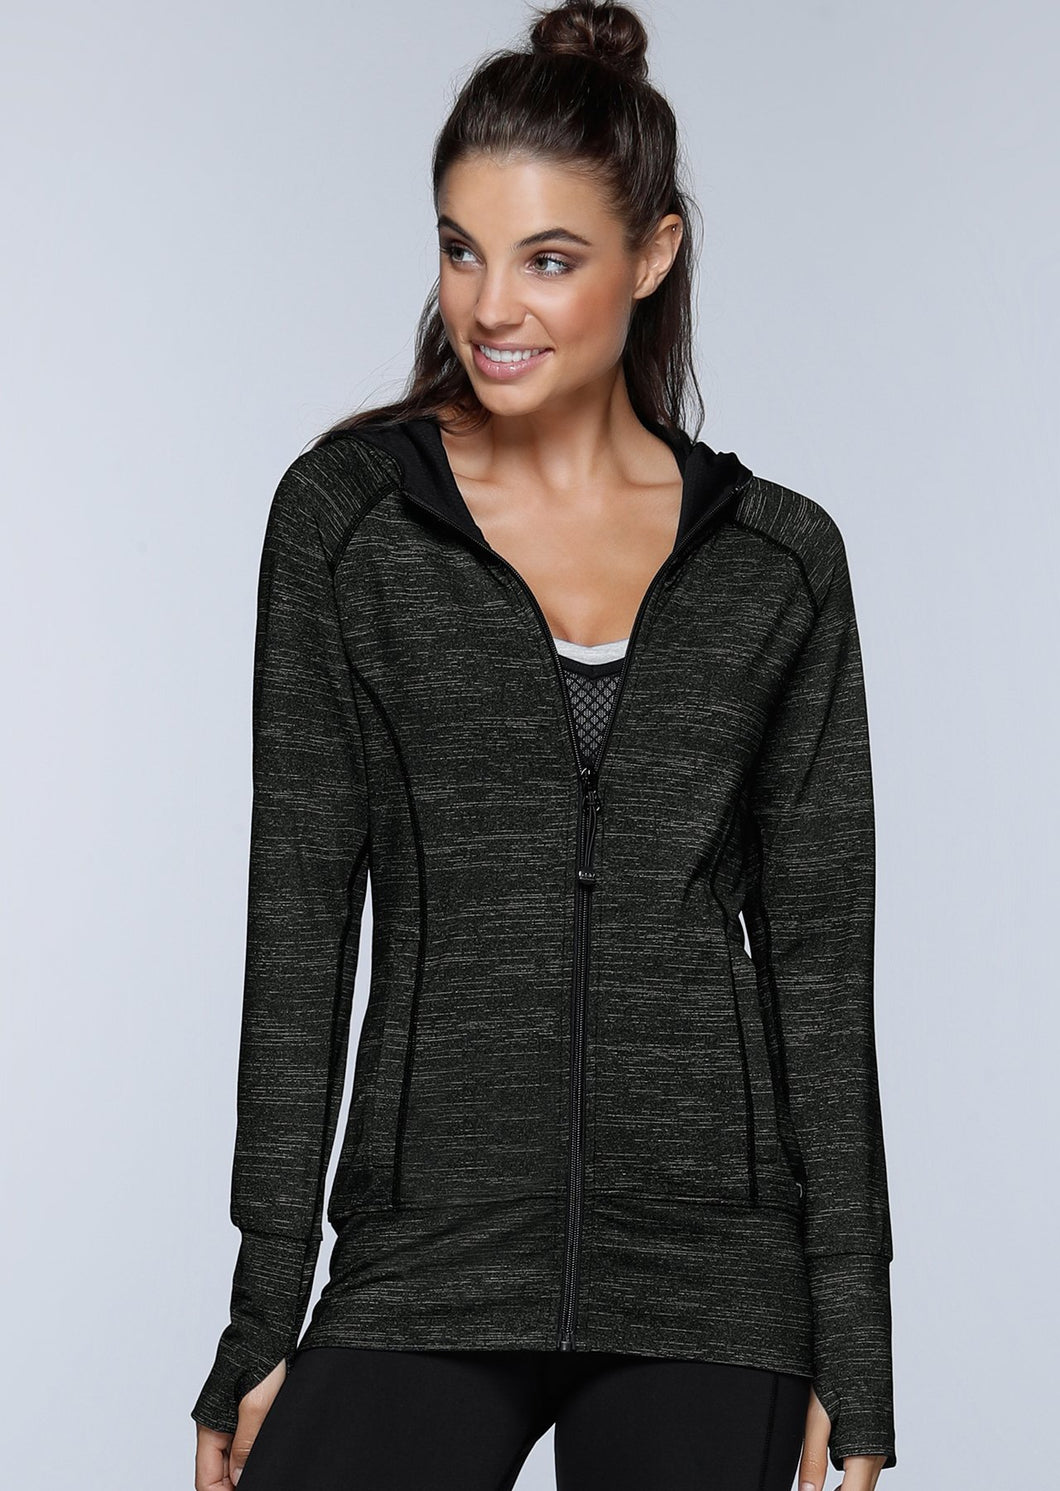 Lorna Jane Action Active Jacket